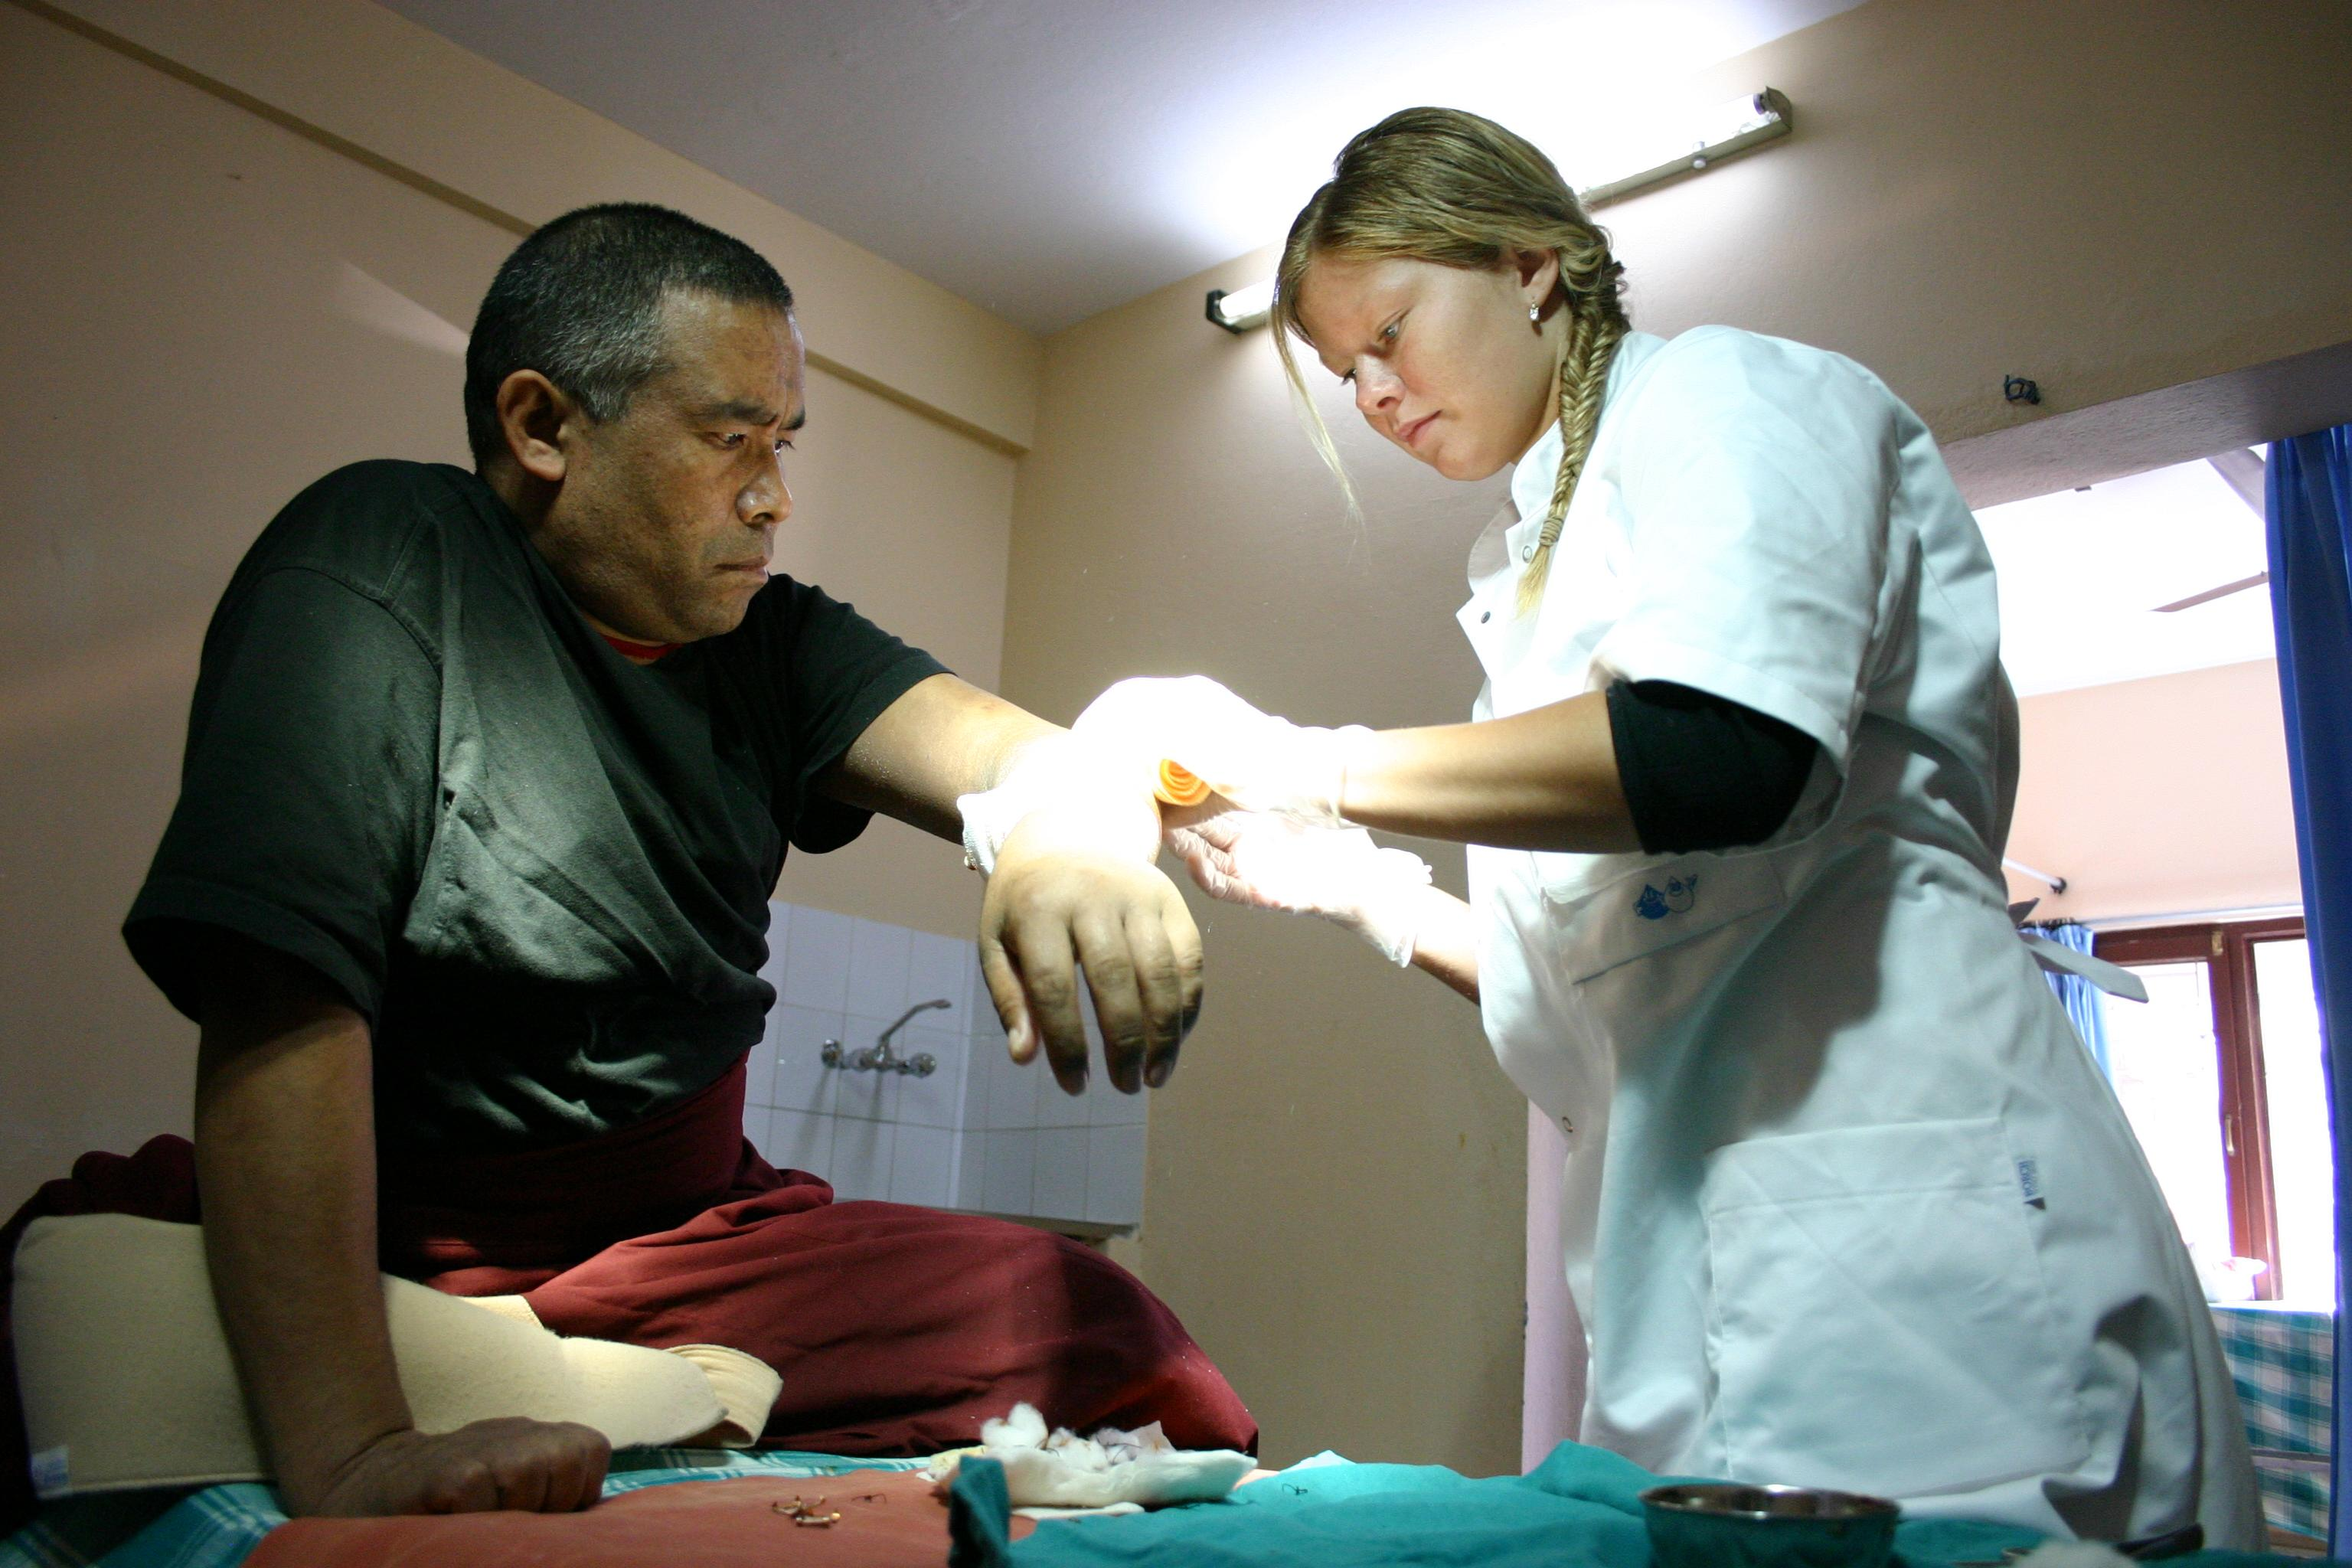 Projects Abroad intern pictured cleaning a patients wound as part of her nursing internship in Nepal.